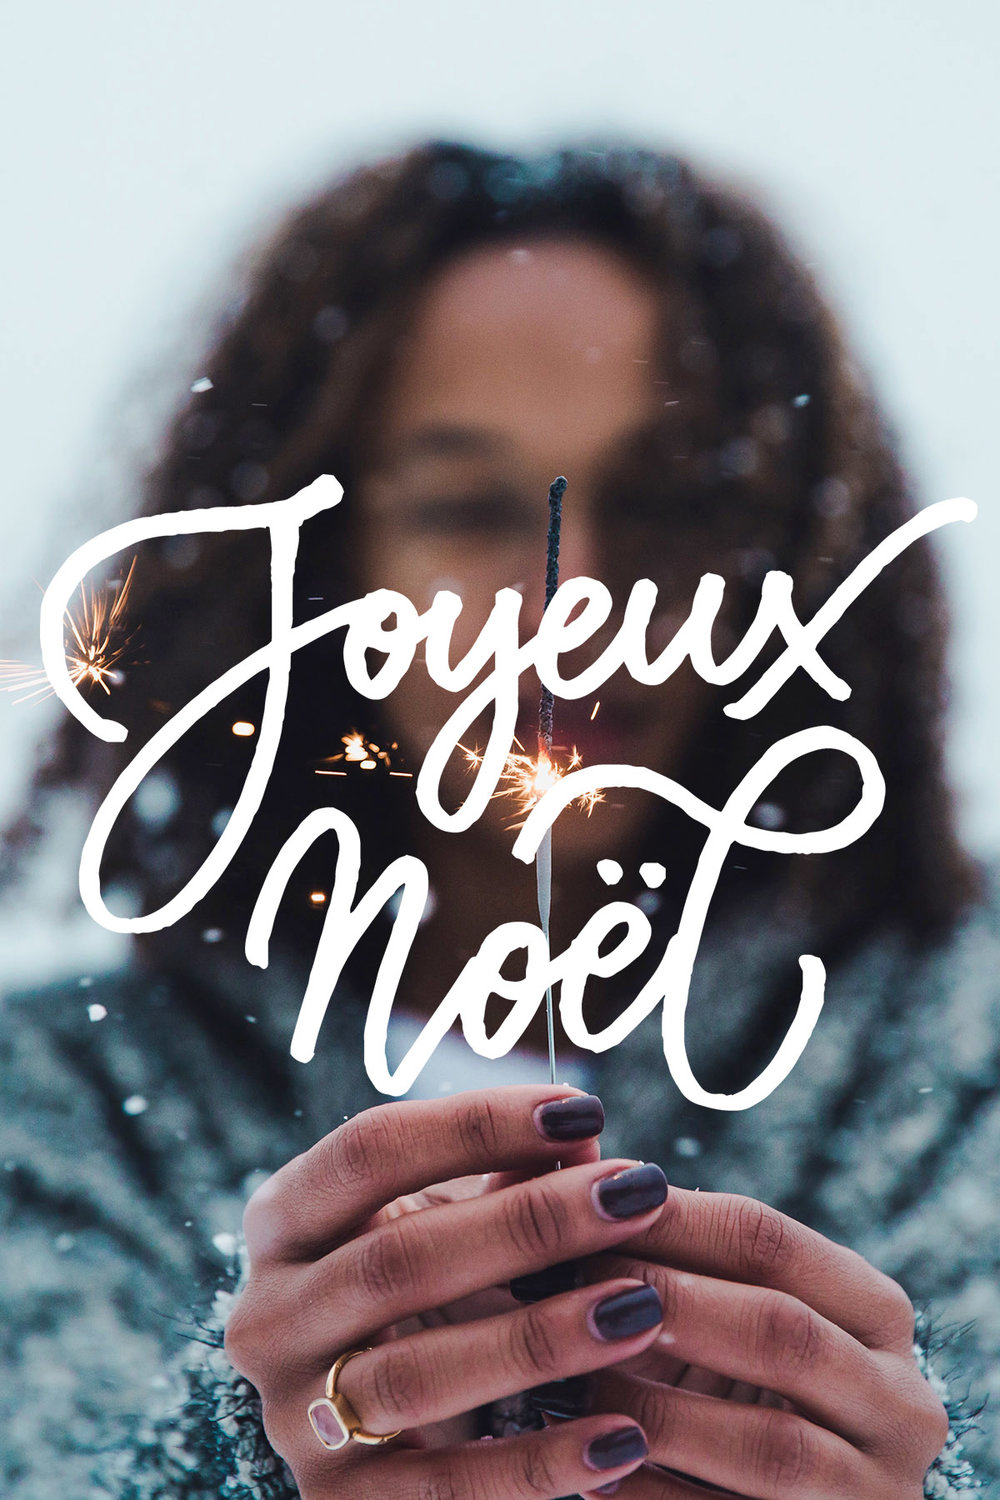 A collection of Christmas Overlays with lettering designs by Type and Graphics Lab | https://crmrkt.com/OMQk8 Photo credit: Jakob Owens | Source: unsplash.com